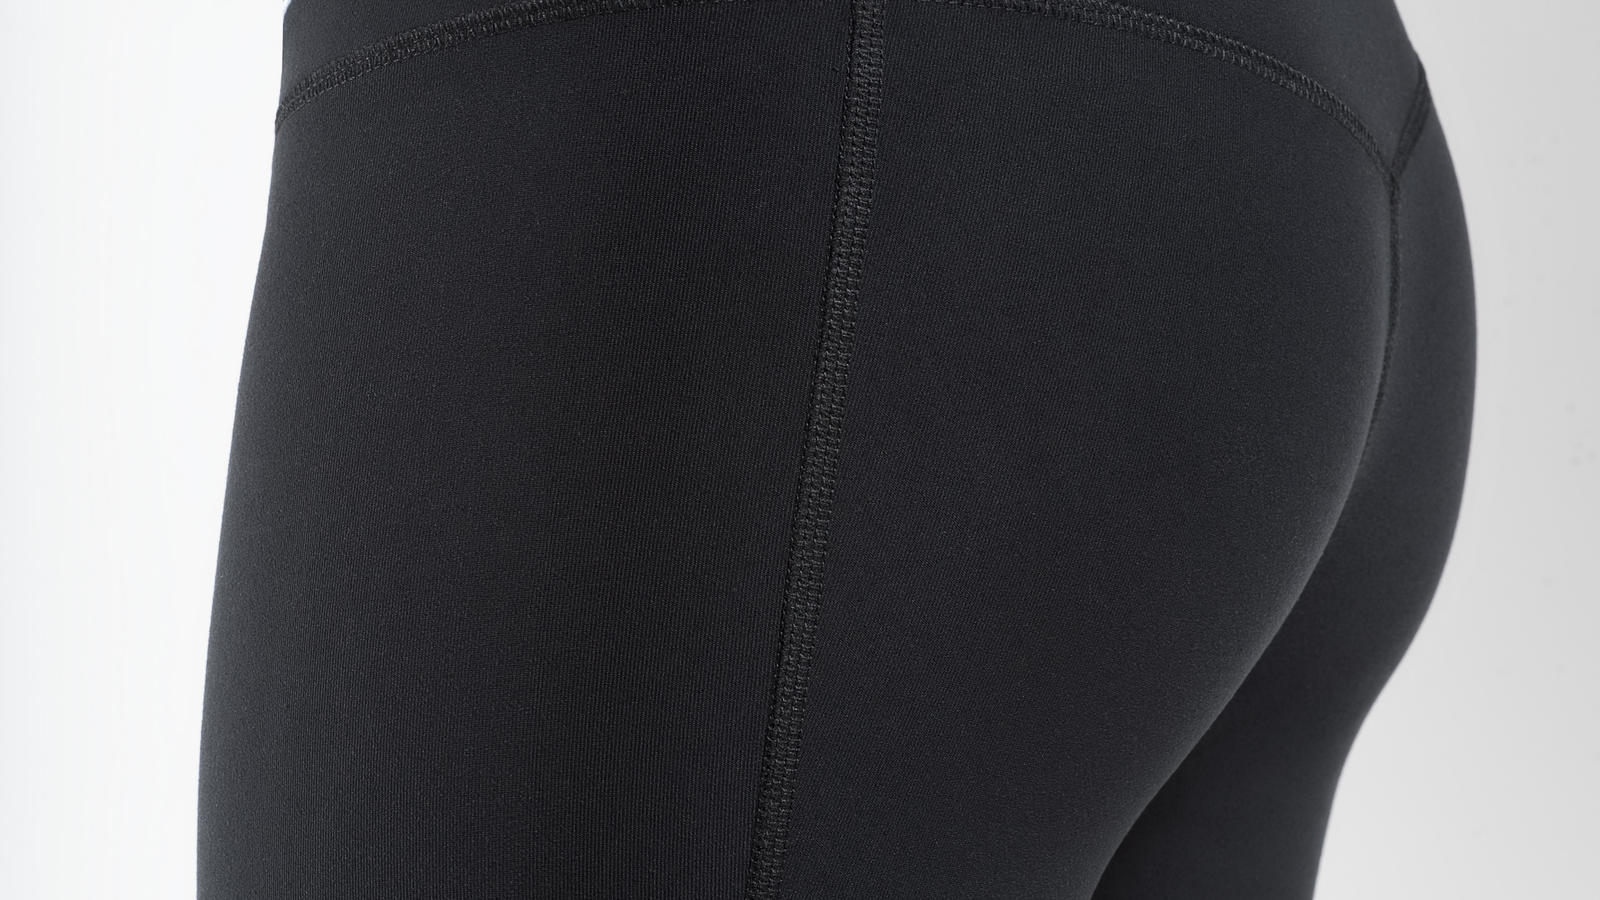 f43bae1f850ae1 Nike_Legend_Pant_Side_Seam_Detail. Nike_Legend_Pant_Slim.  Nike_Legend_Pant_Tight. Nike_Legend_Pant_V_Seam_Detail.  Nike_Legend_Pant_Waistband_Detail